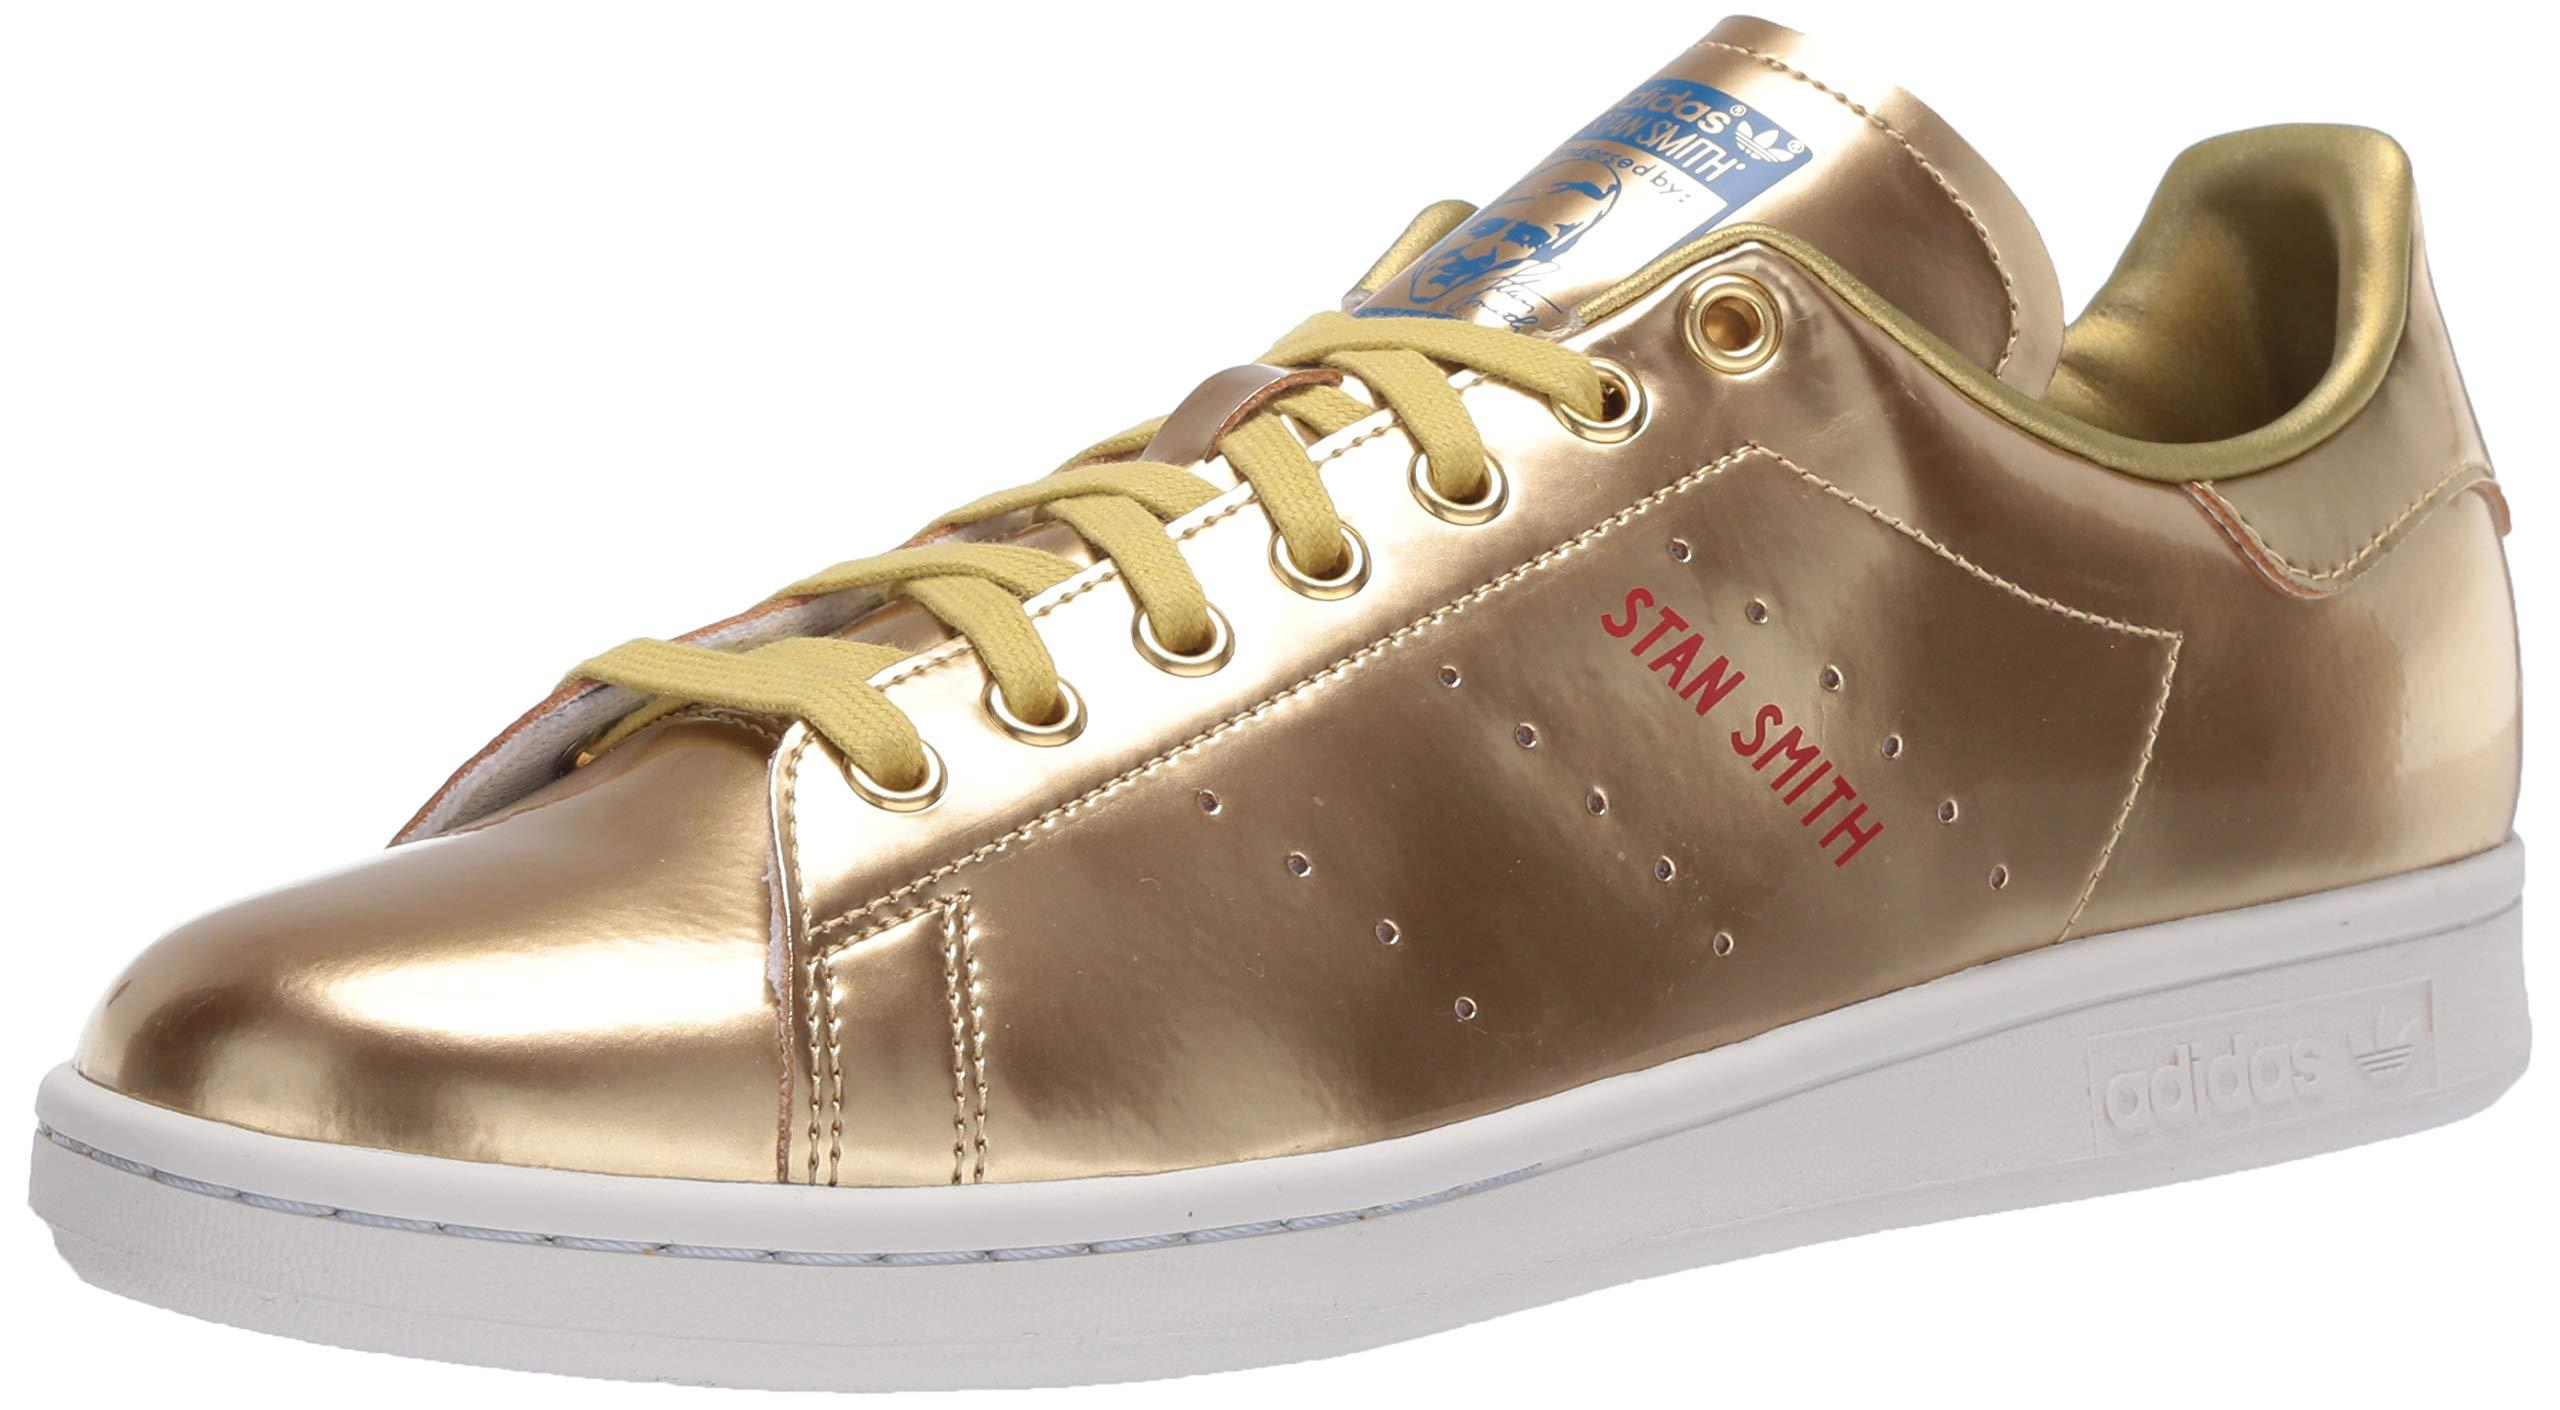 adidas Originals Leather Stan Smith in Gold/White (Metallic) for ...